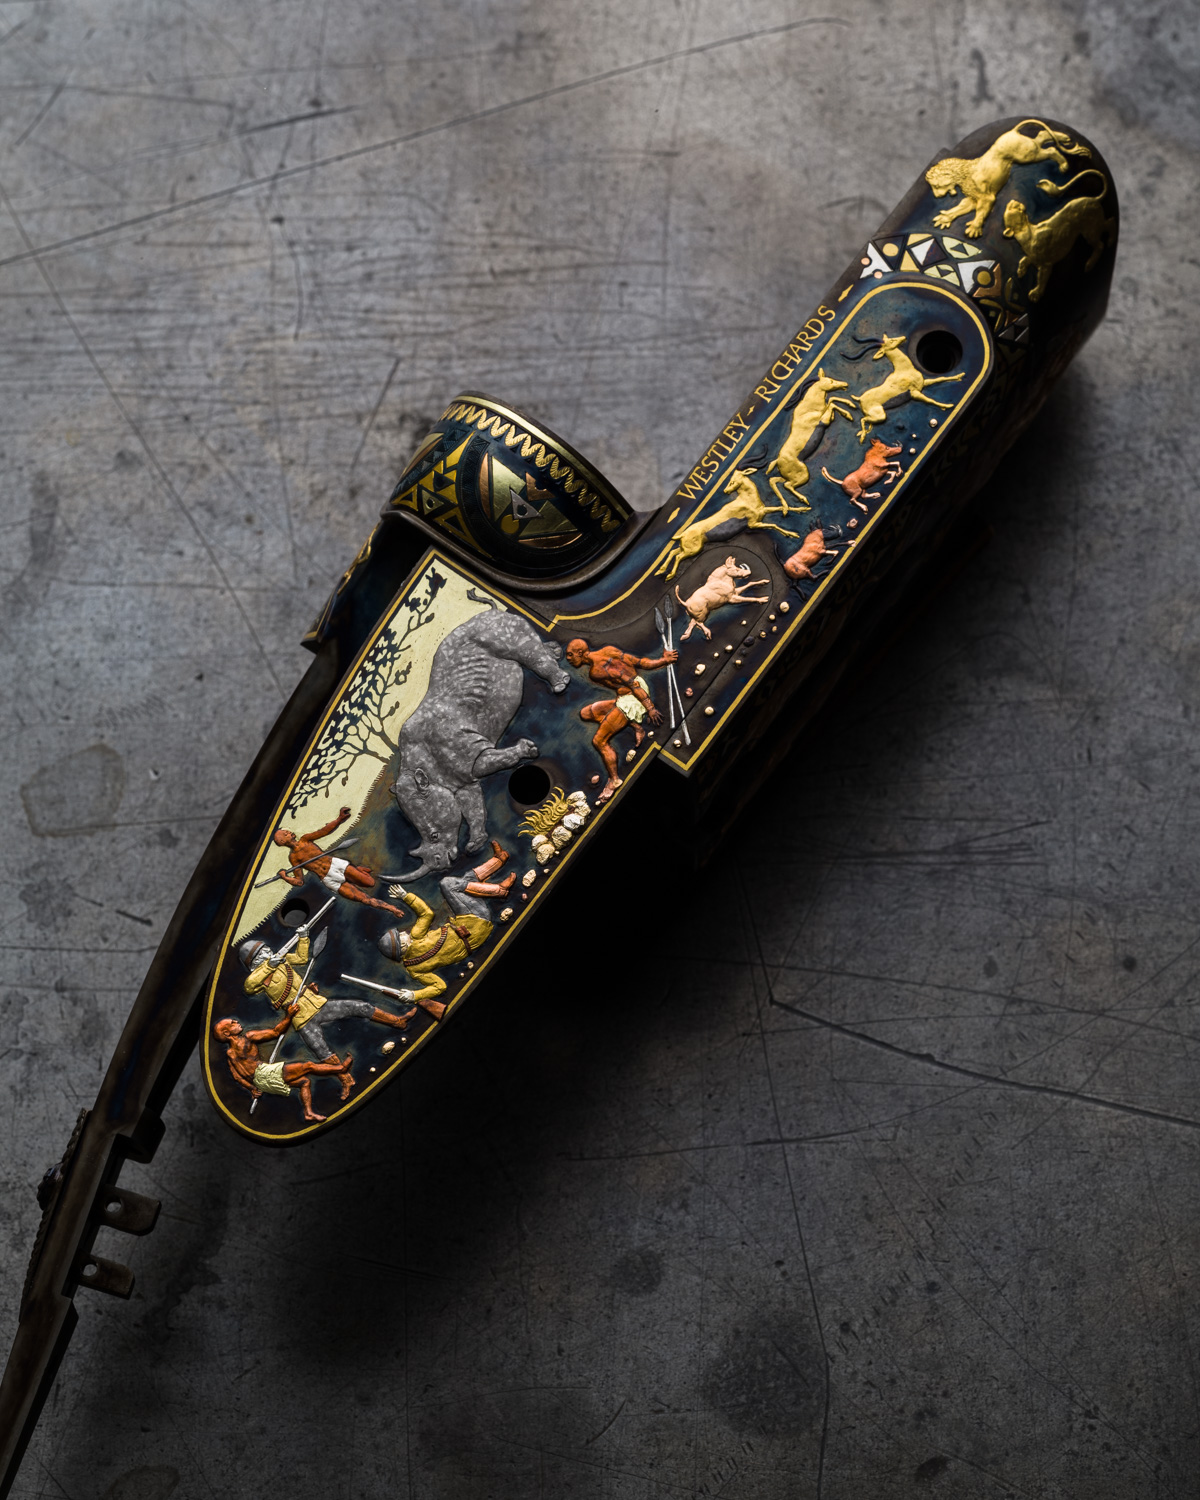 The Westley Richards Africa Rifle